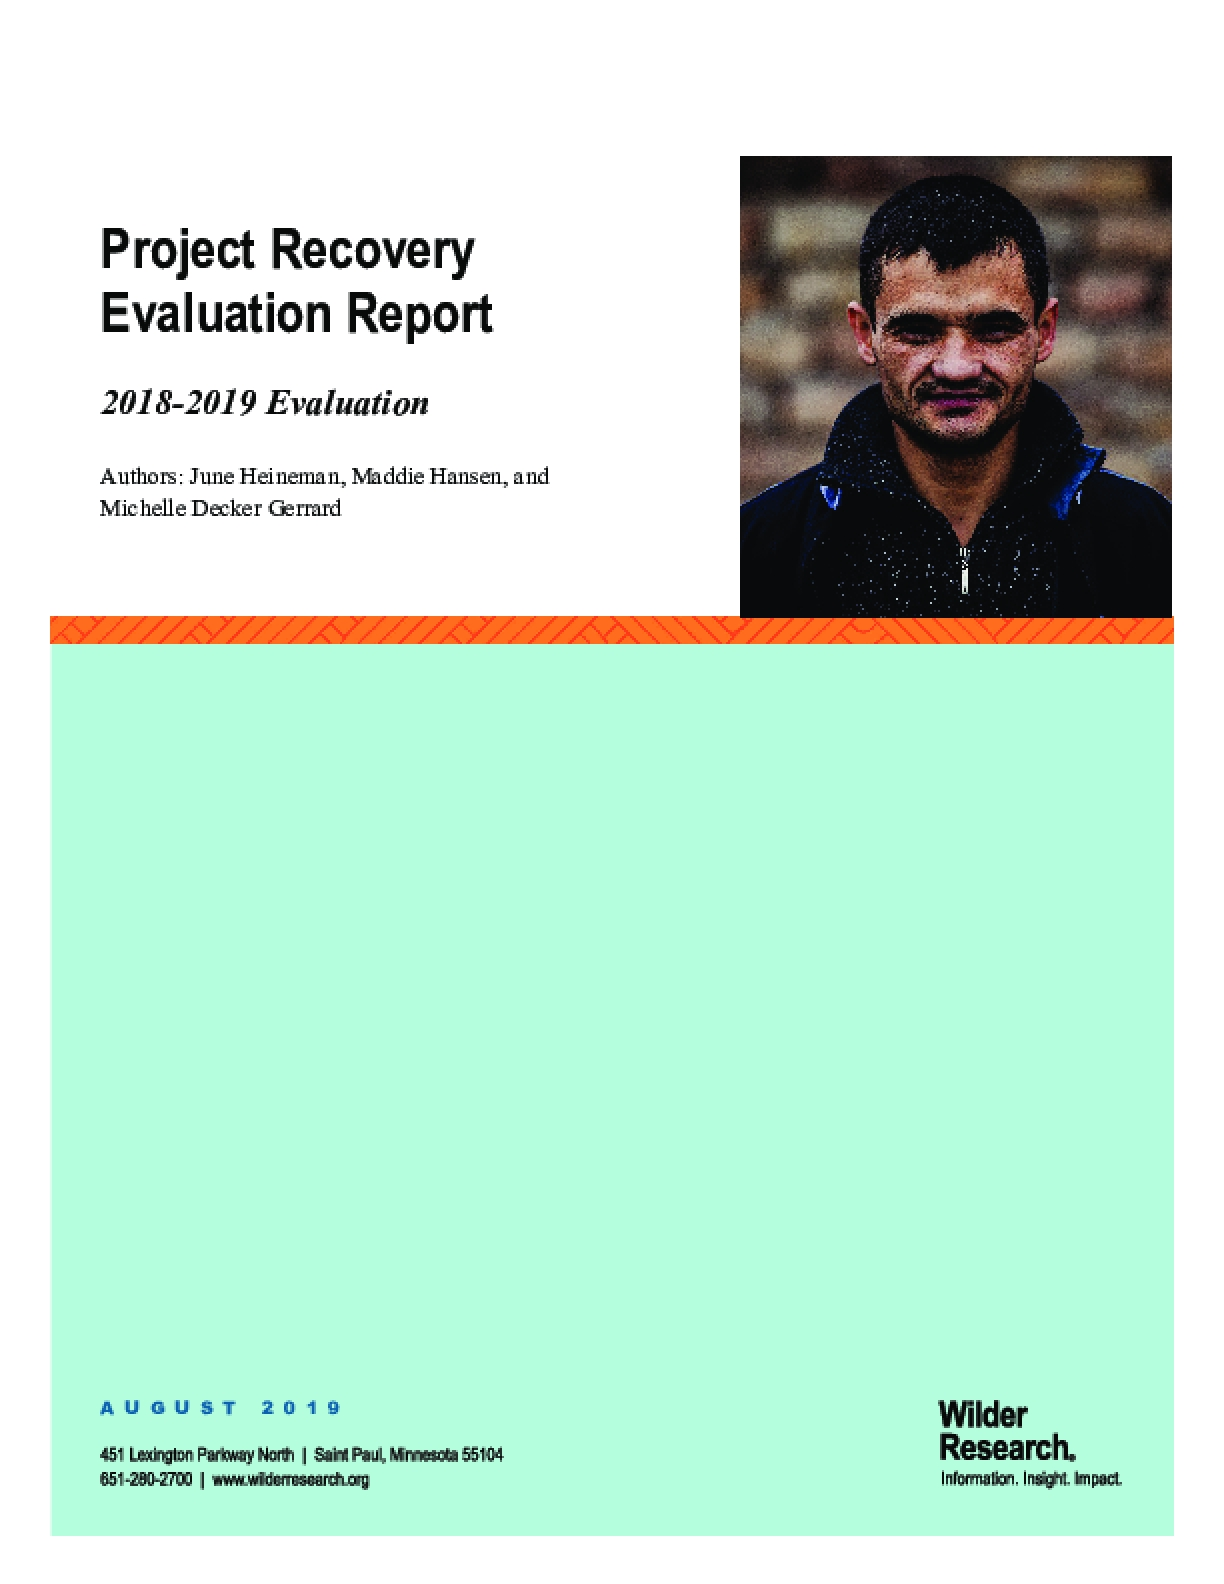 Project Recovery Evaluation Report: 2018-2019 Evaluation